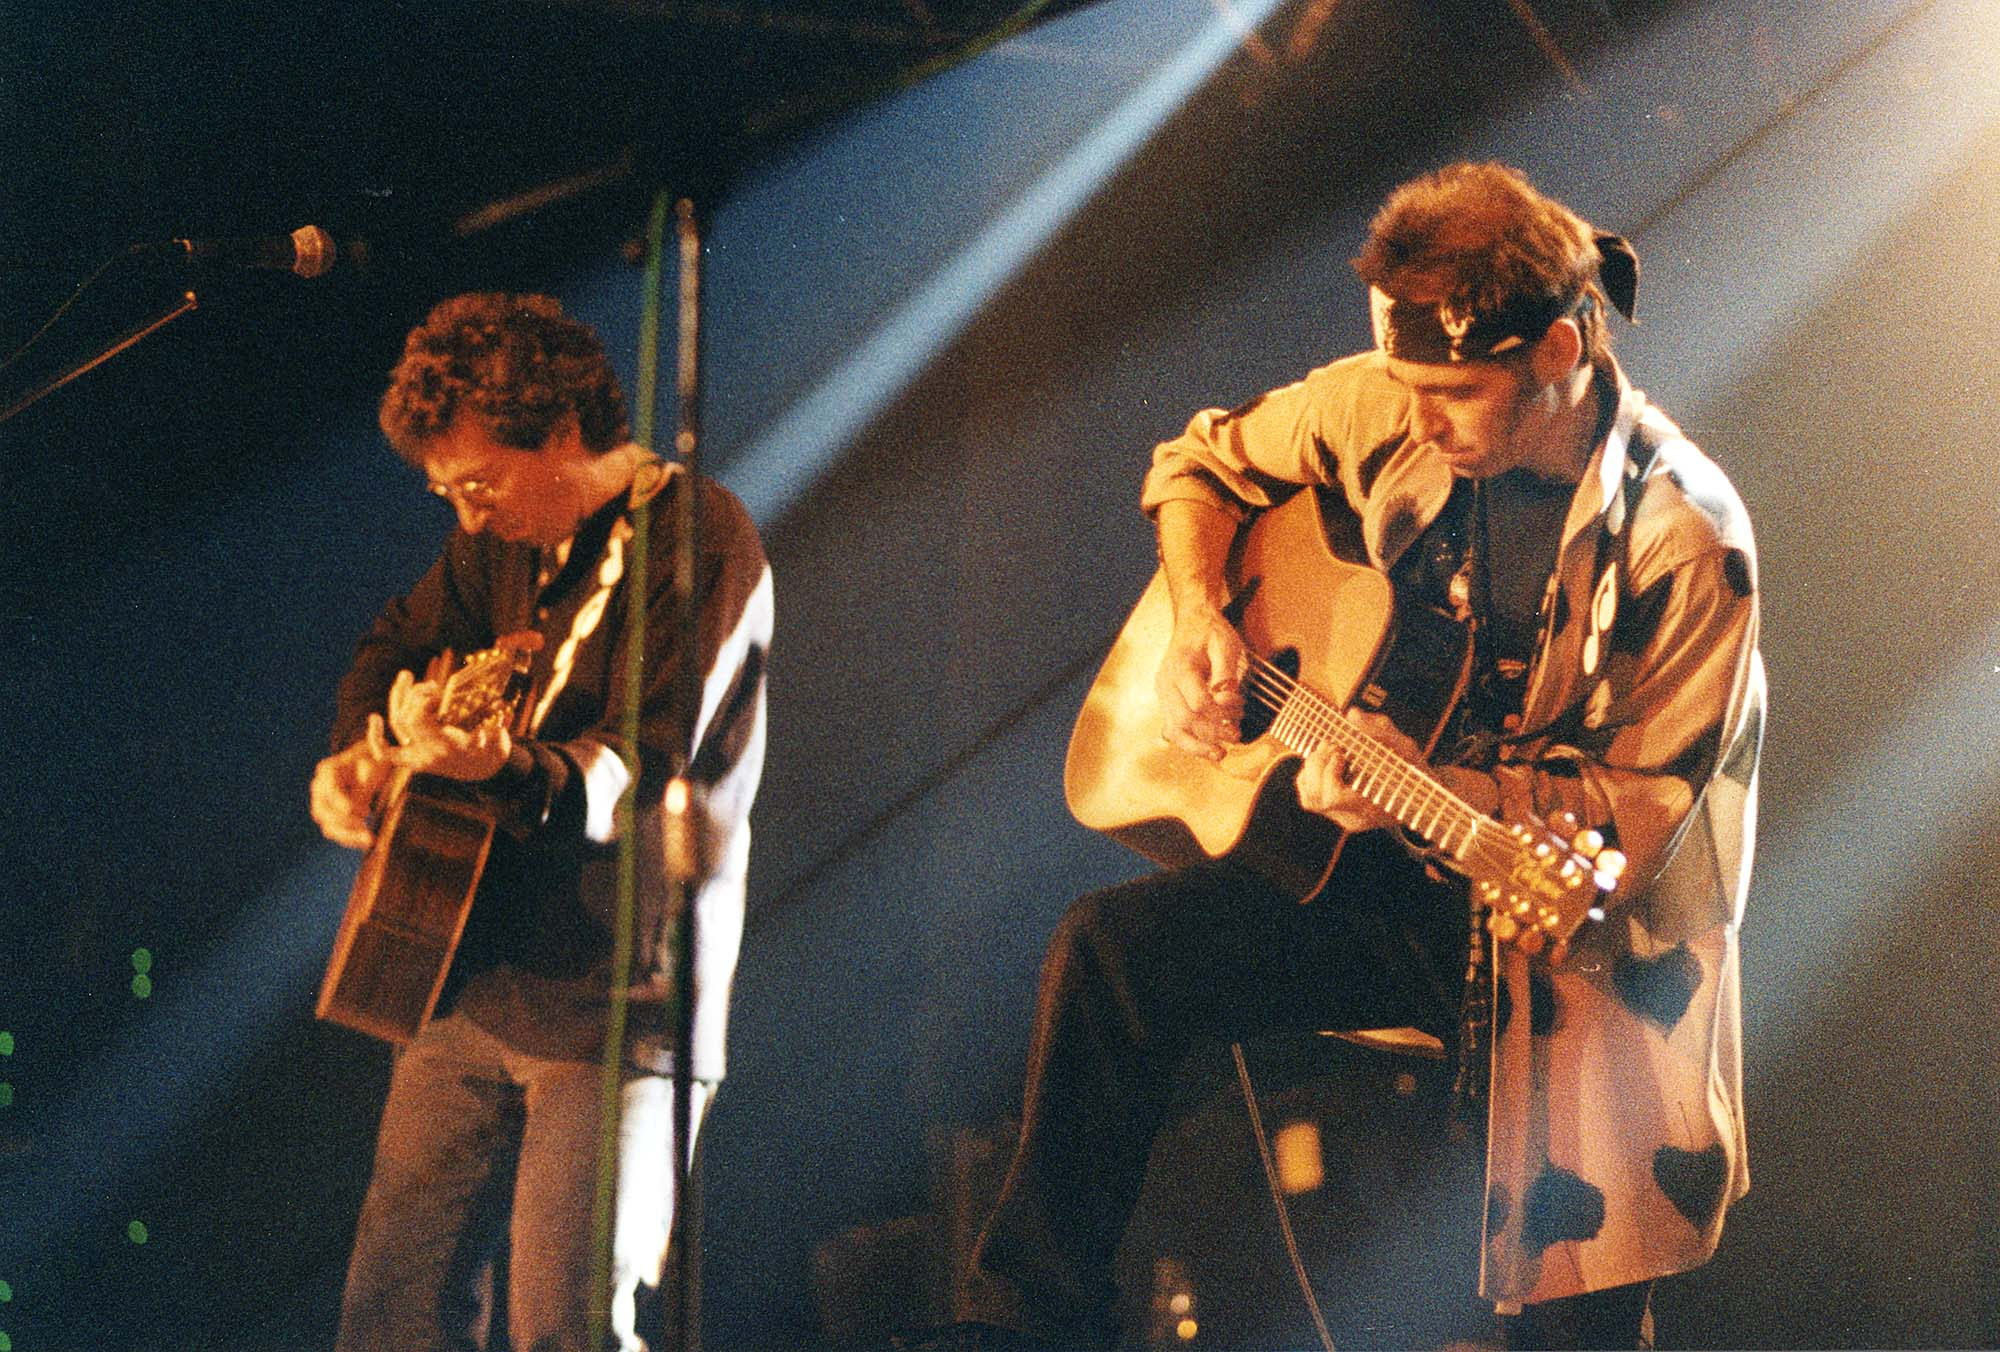 Nils and Tom 1992